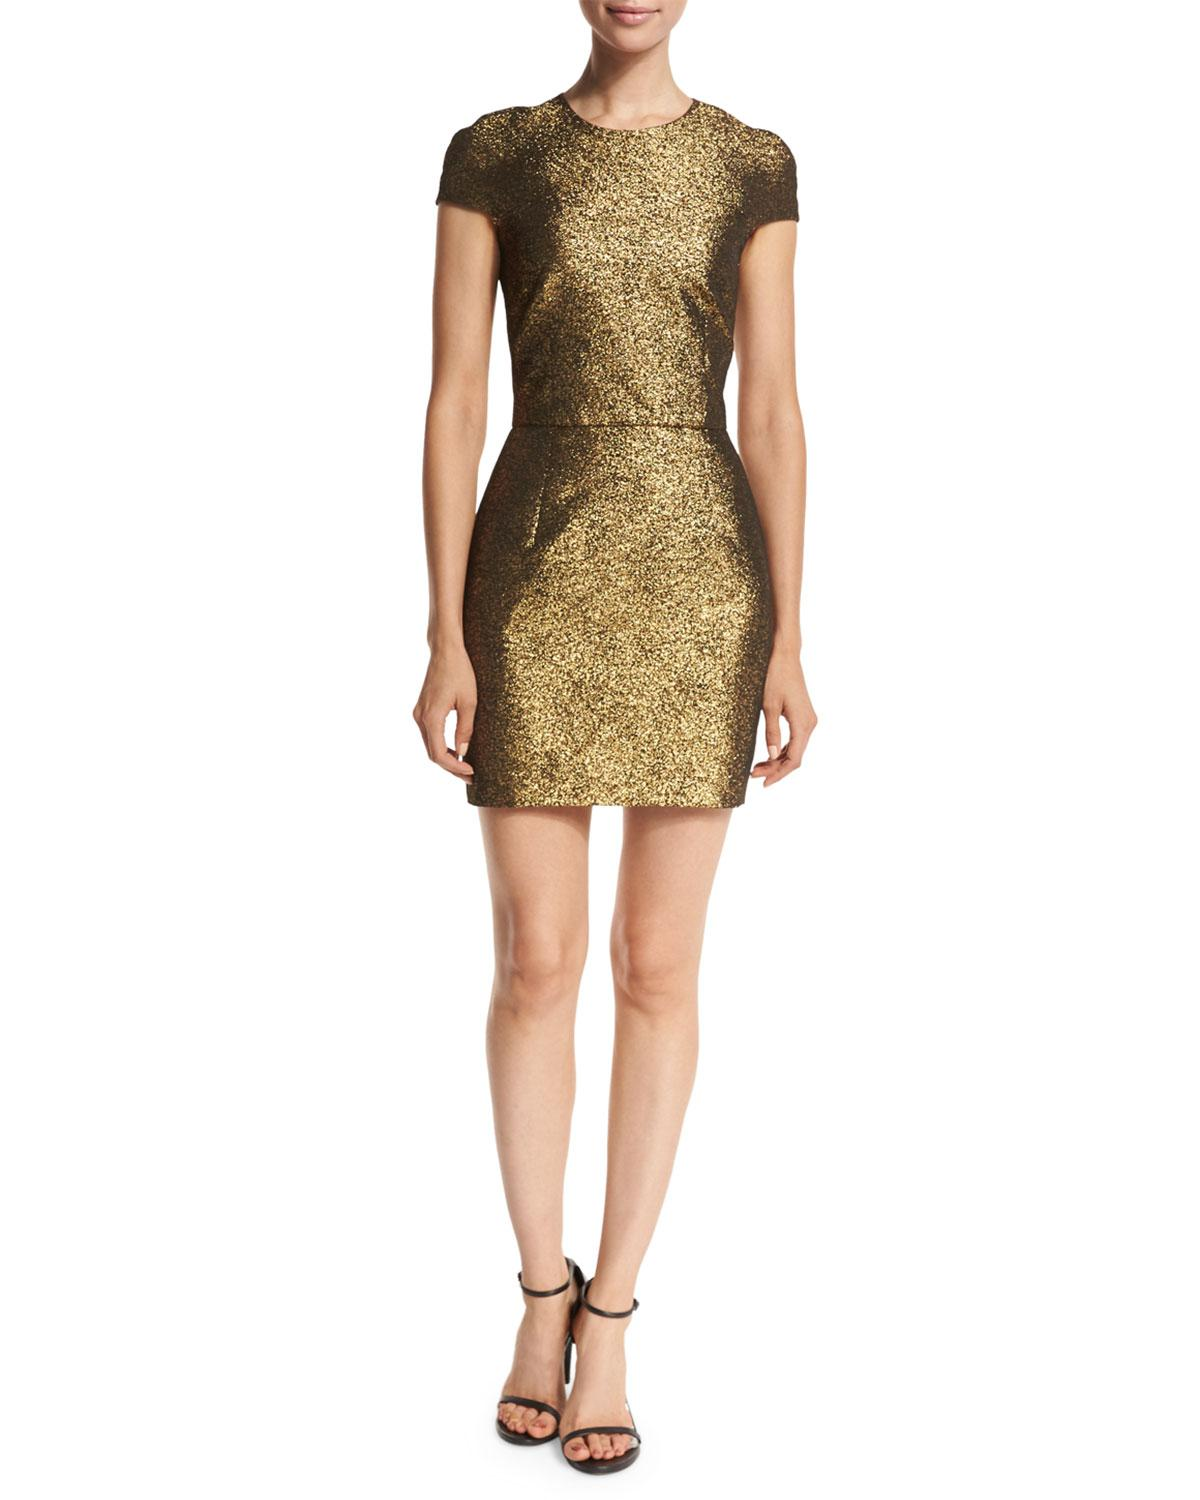 Diane von Furstenberg Mini Sheath Dress Clearance Great Deals Free Shipping Fashionable Free Shipping Pictures X30gL